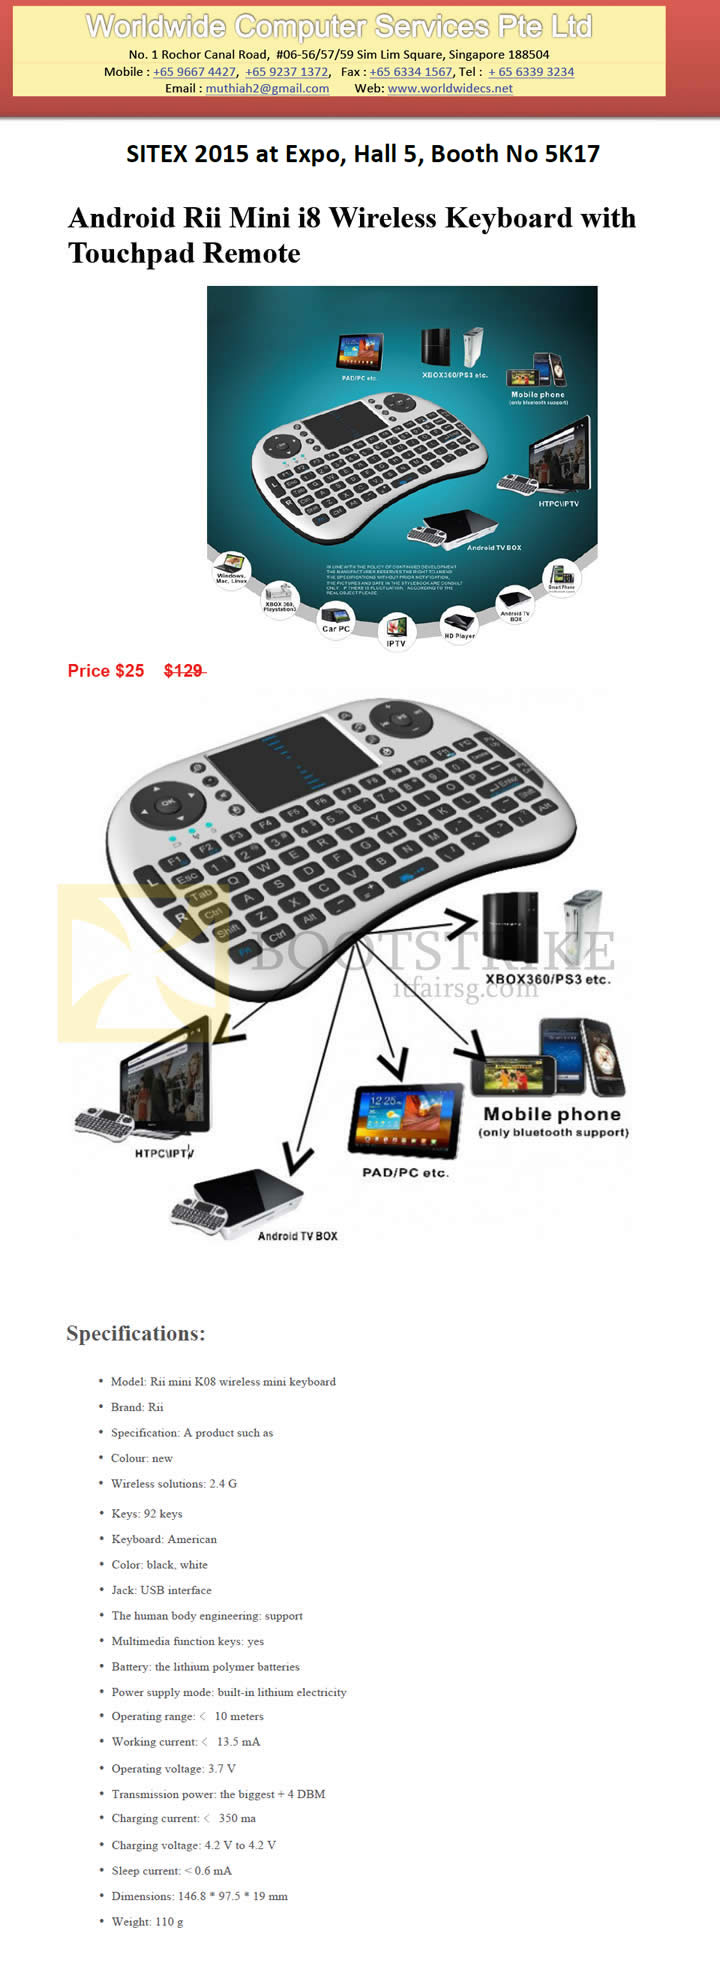 SITEX 2015 price list image brochure of Worldwide Computer Services Android Rii Mini I8 Wireless Mini Keyboard